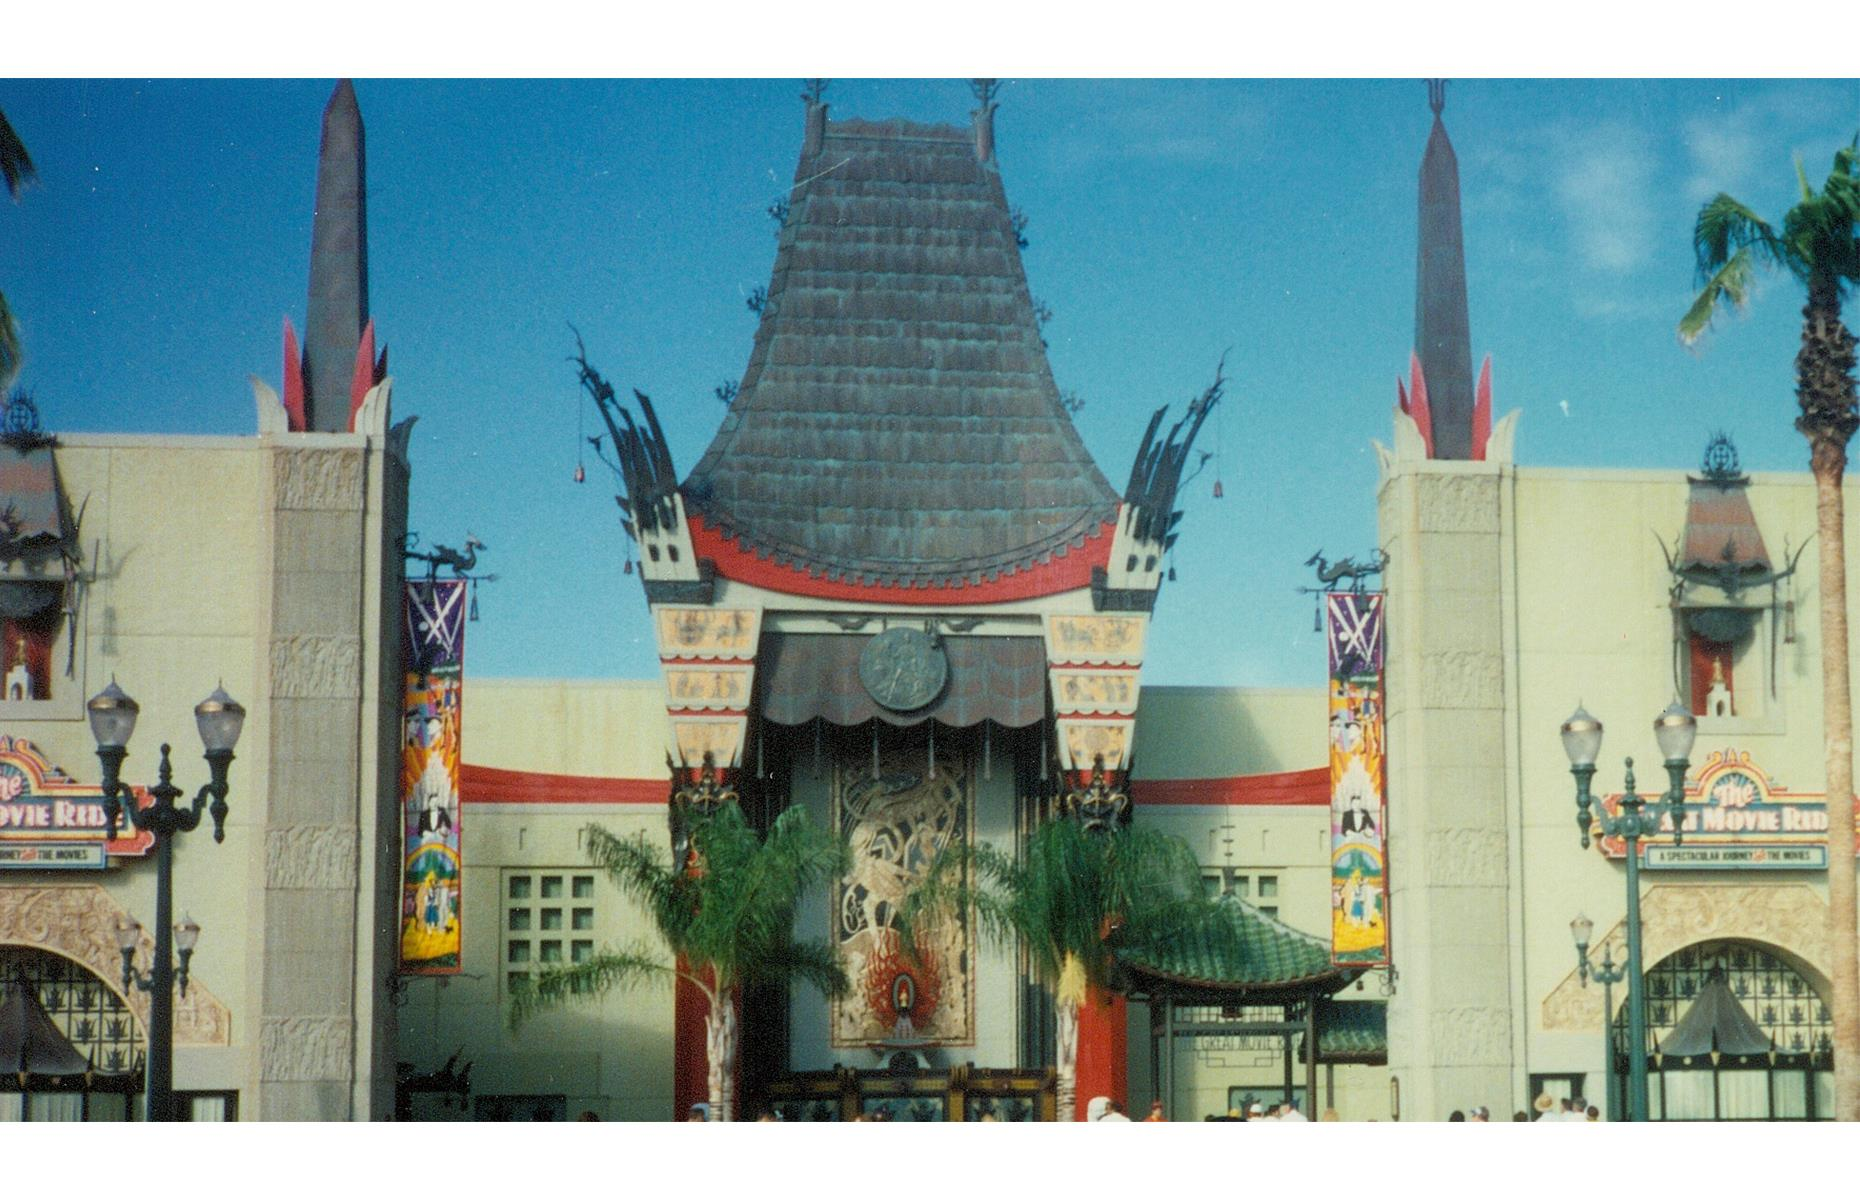 Slide 29 of 38: Disney's Hollywood Studios came later in 1989. The Great Movie Ride (pictured), located in a model of Hollywood's Grauman's Chinese Theatre, was a major attraction of the latter, and only closed down in 2017.